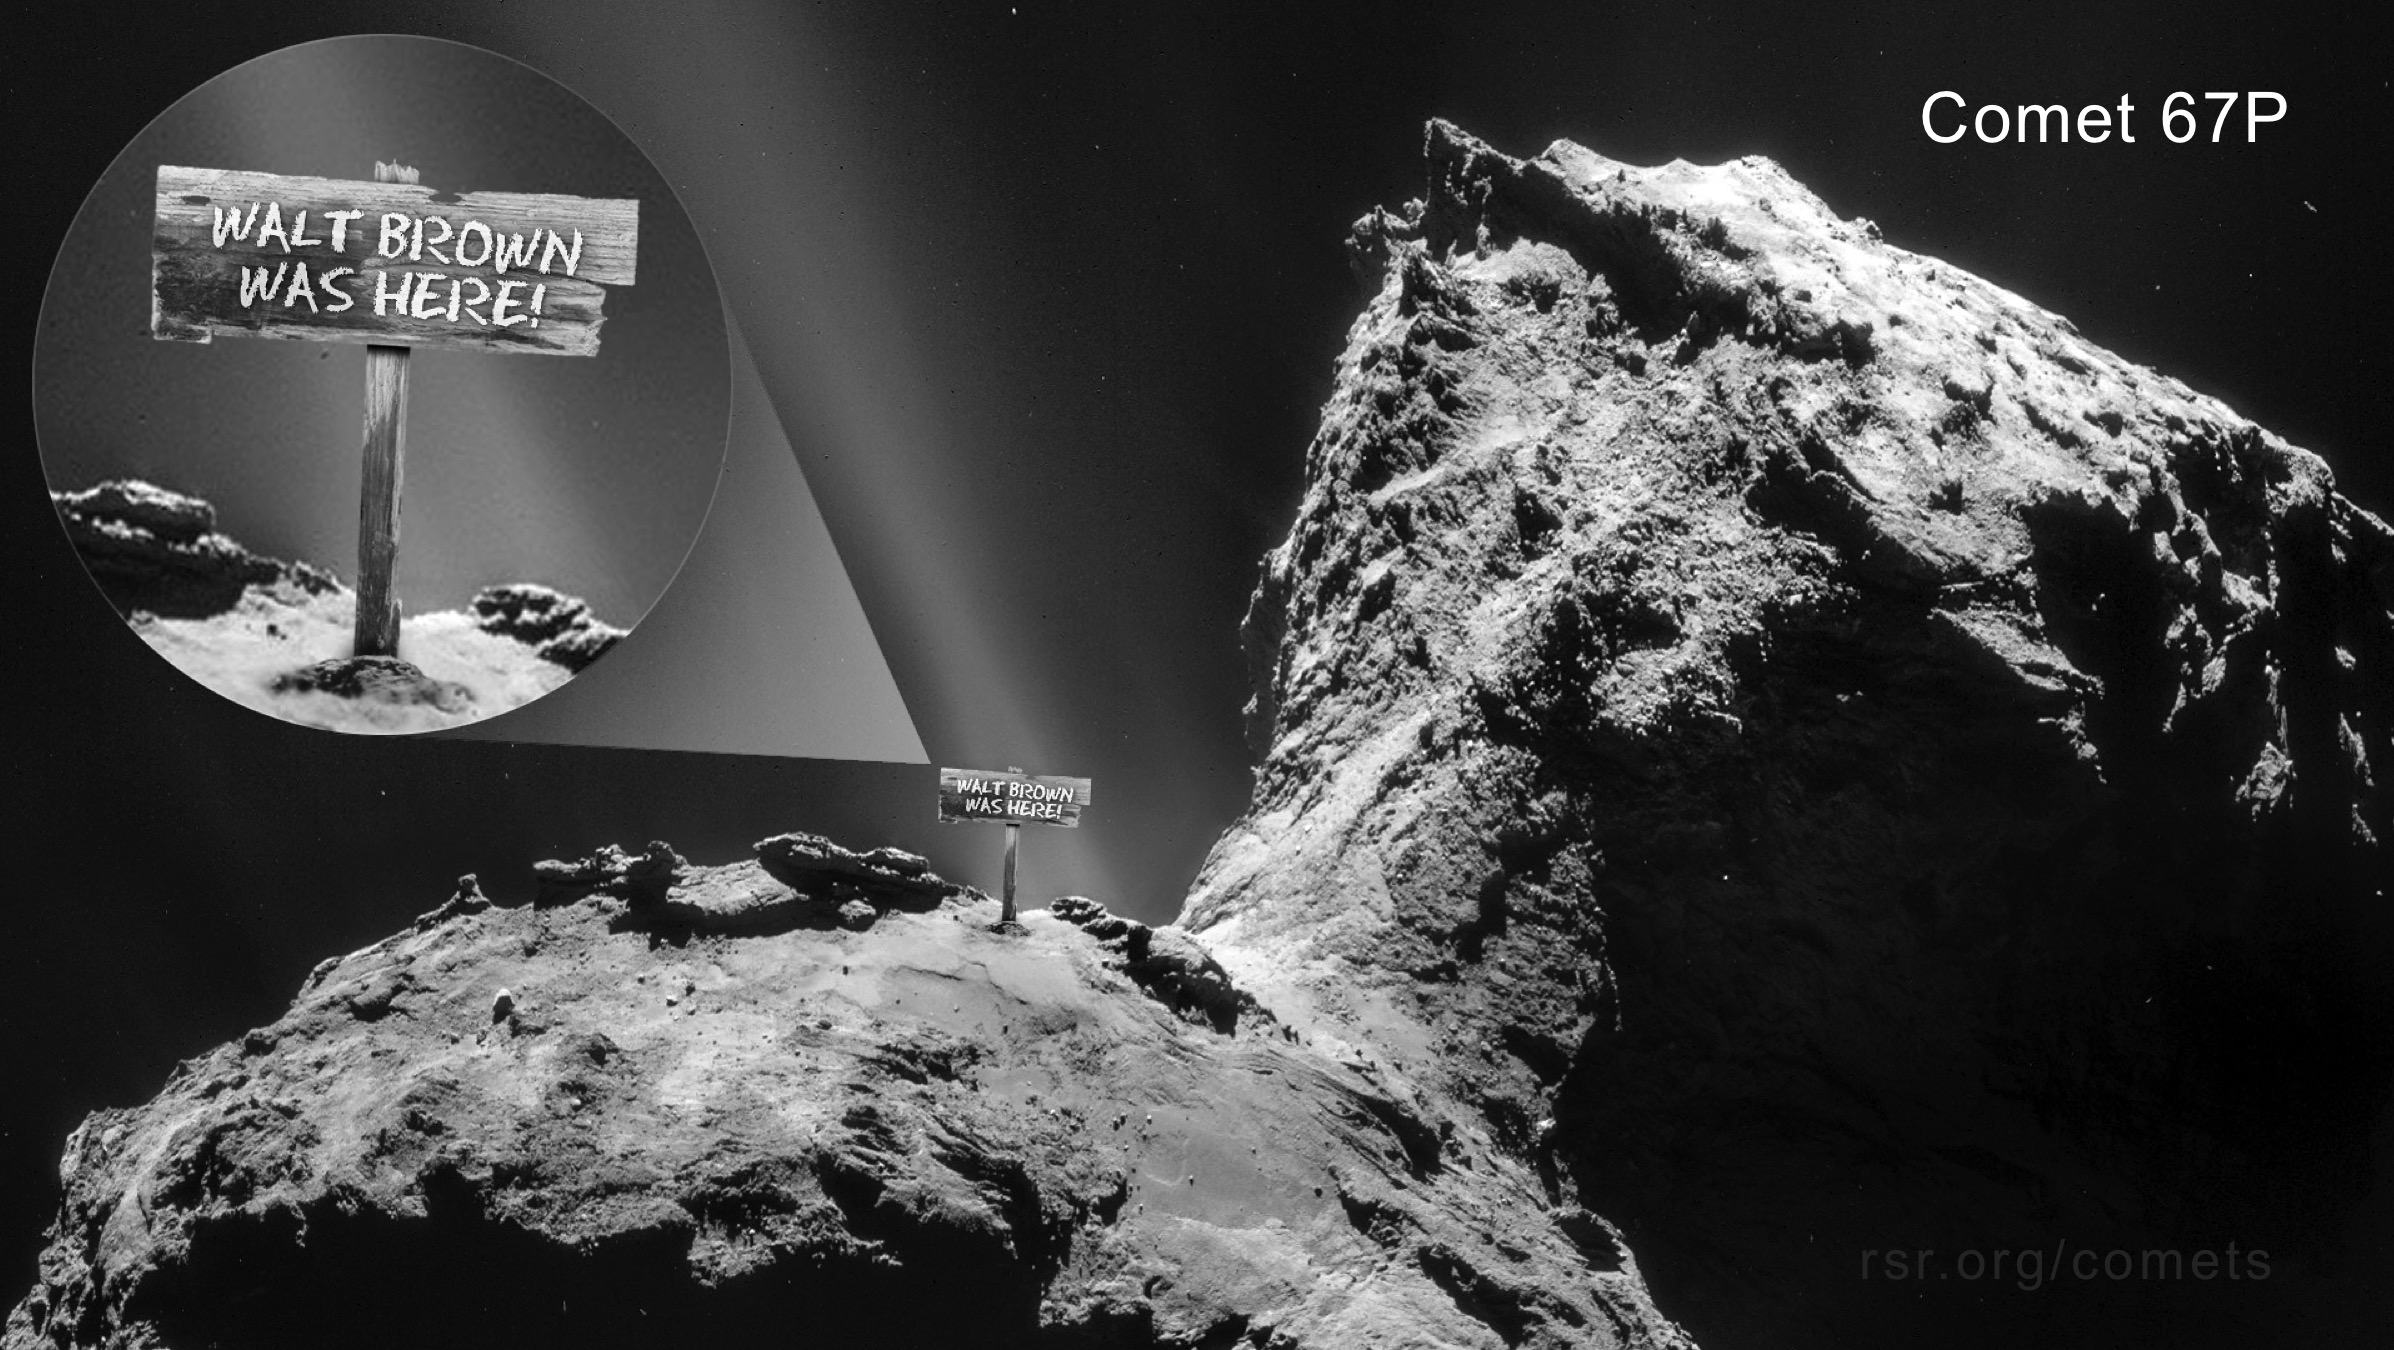 Walt Brown was here sign on Comet 67p.